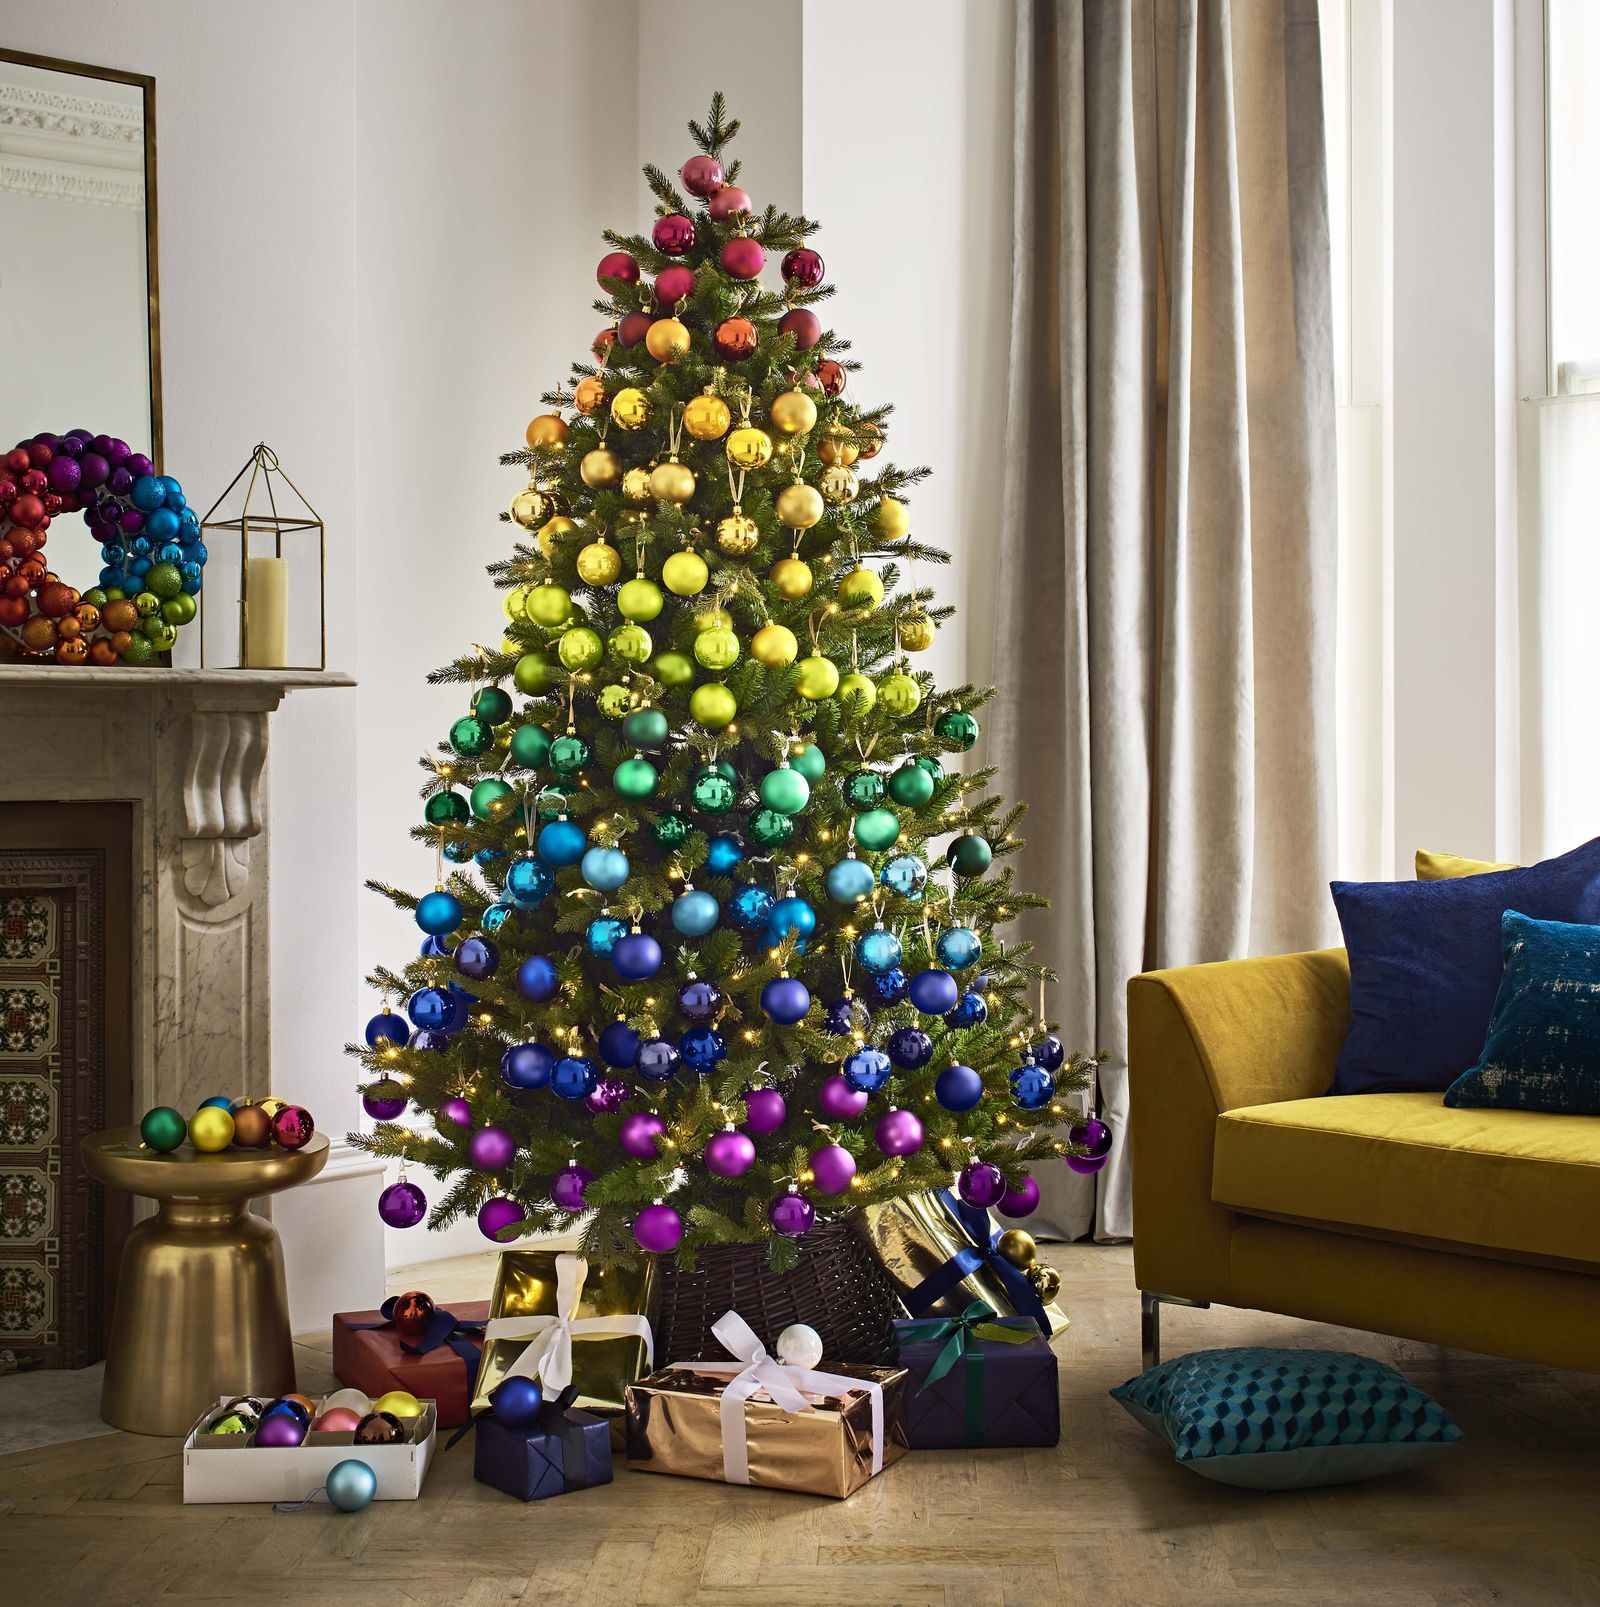 This Will Be The Biggest Christmas 2018 Decorating Trend Reveals John Lewis Christmas Decor Trends Rainbows Christmas Rainbow Christmas Tree